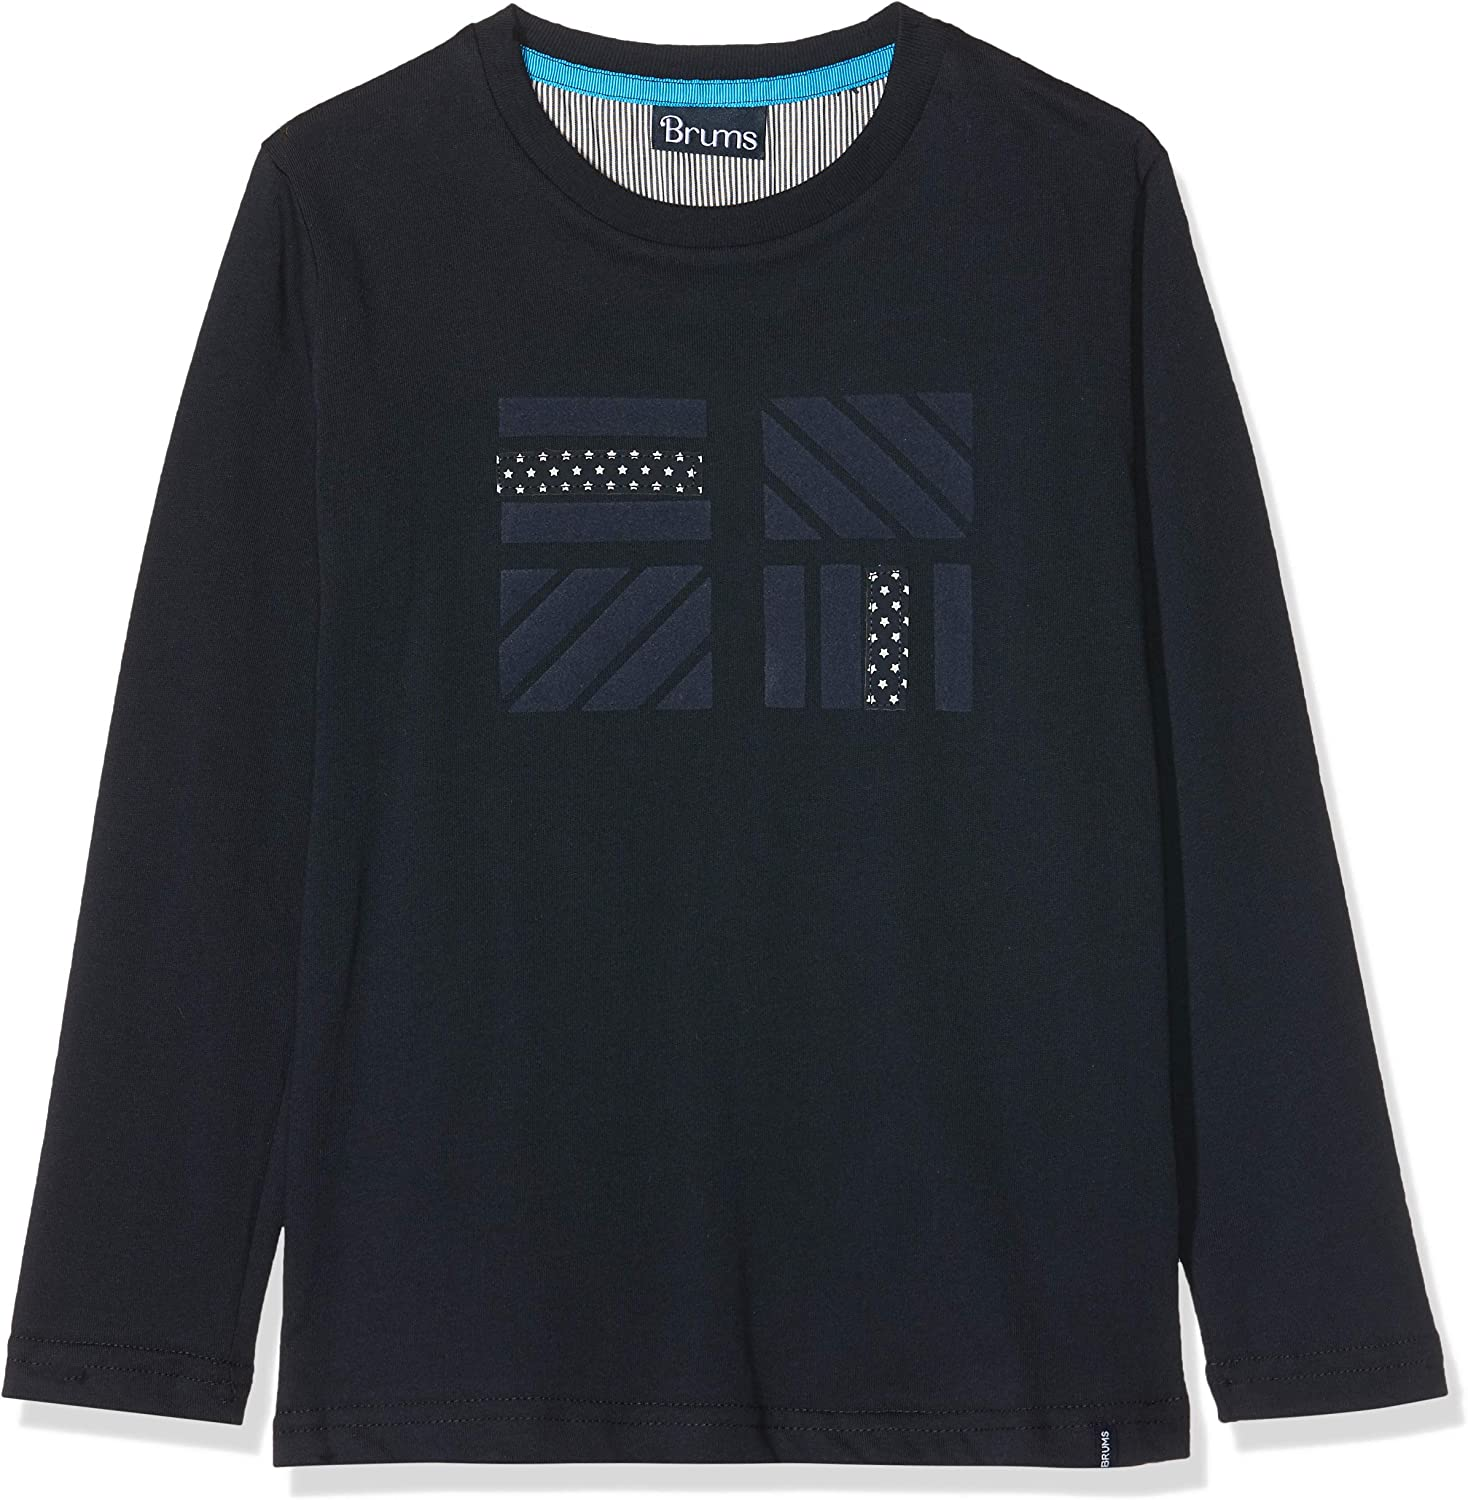 Brums Boys T-Shirt Jersey Stampa E Applicazione Long Sleeve Top